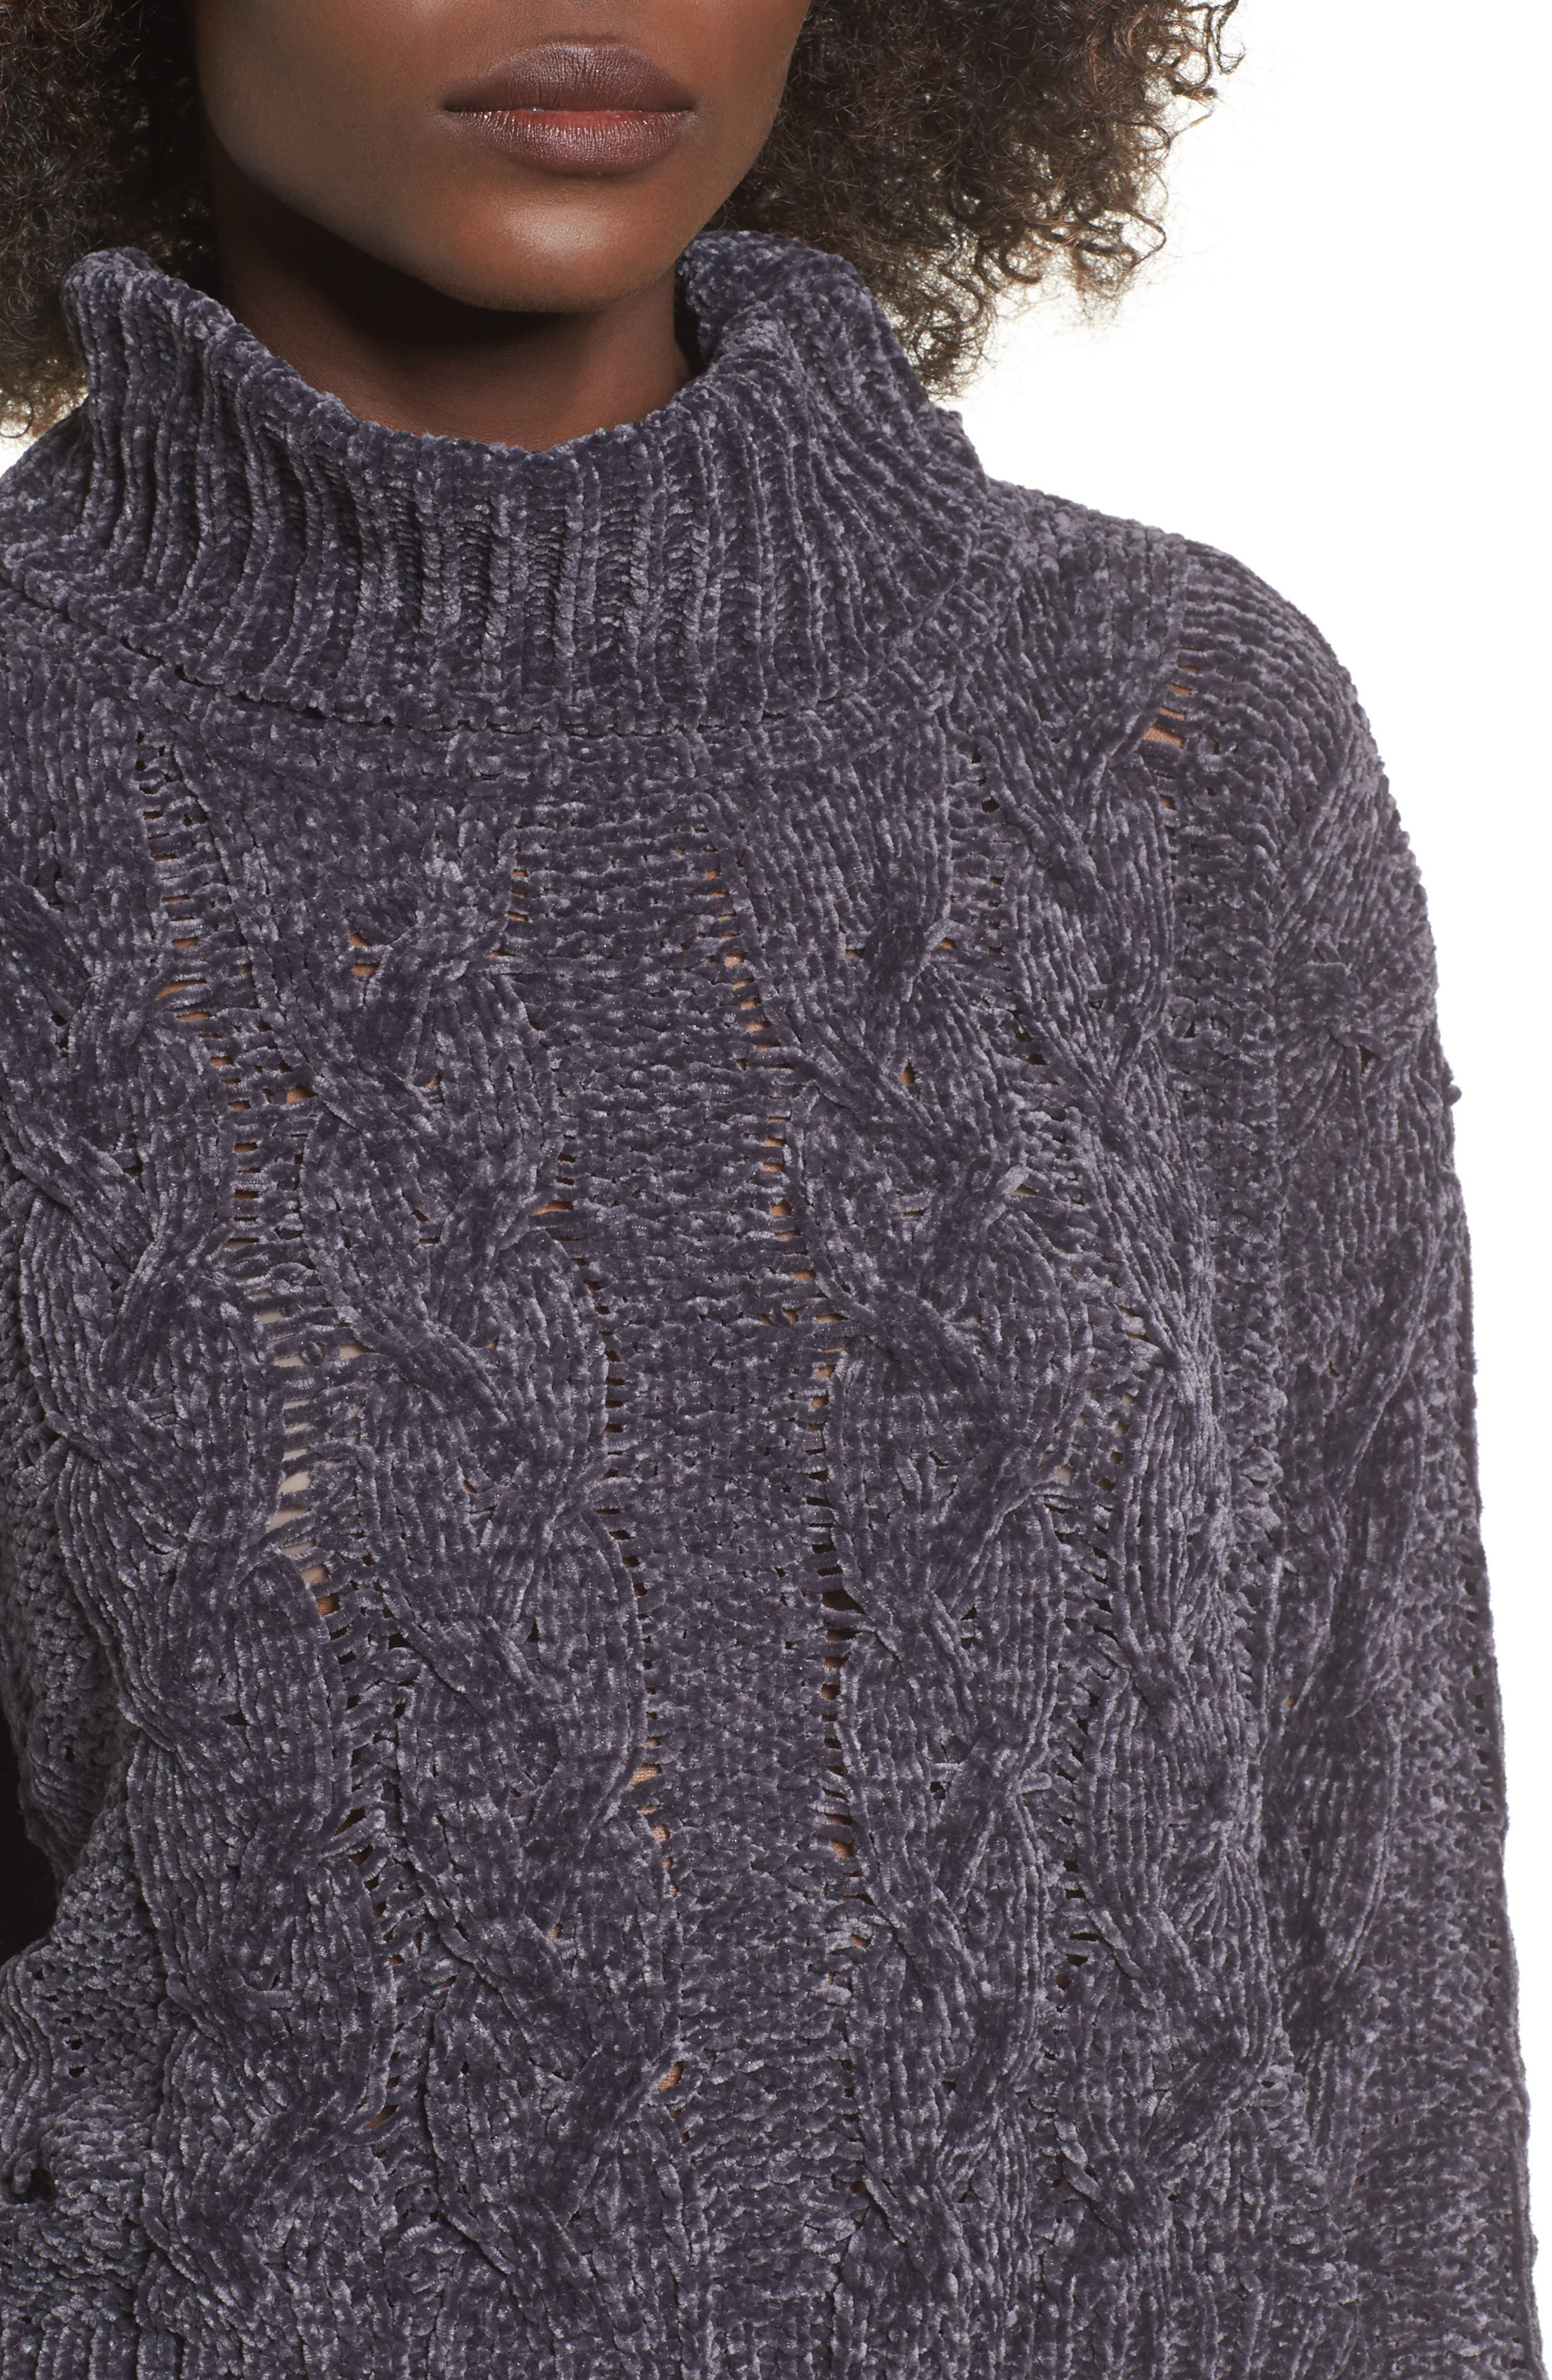 Chenille Turtleneck Sweater,                             Alternate thumbnail 4, color,                             020